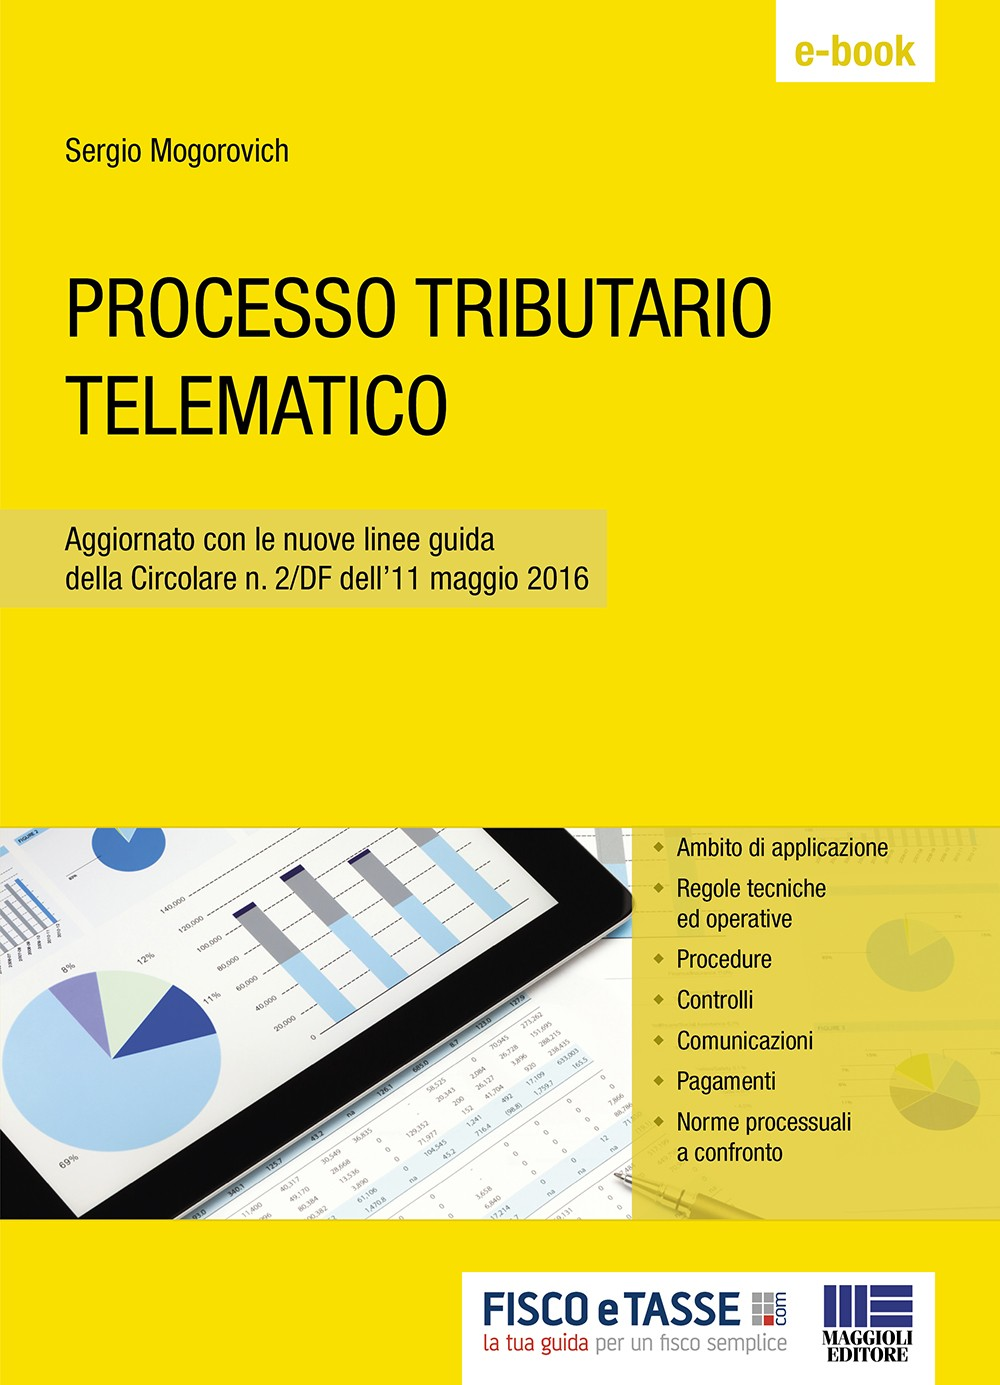 Google Book Cover Images Api : Processo tributario telematico sergio mogorovich ebook